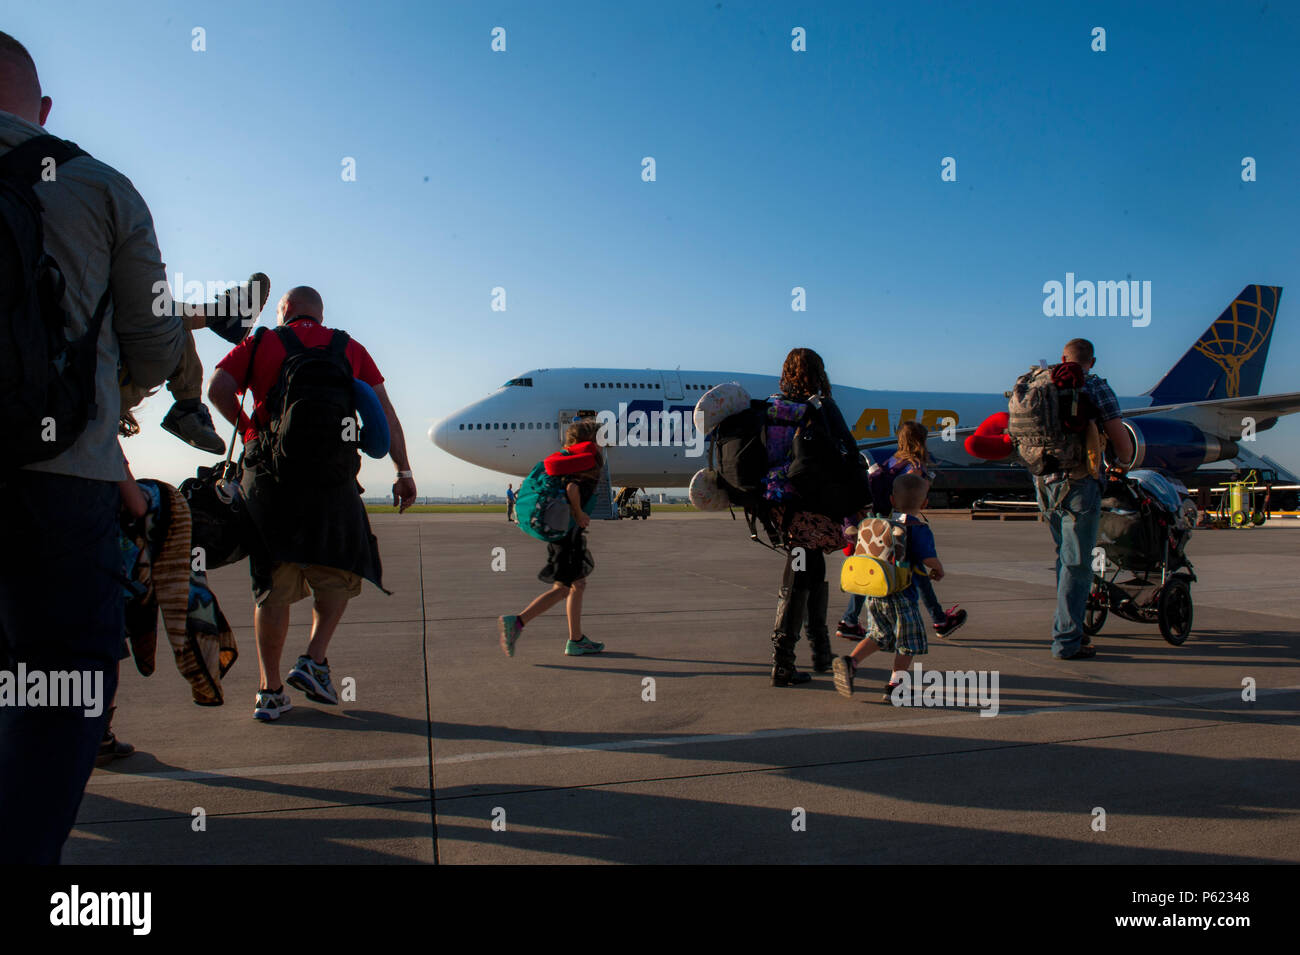 Families of U.S. Airmen and families of Department of Defense civilians walk toward an Atlas Air 747 airliner April 1, 2016 at Incirlik Air Base, Turkey. Department of Defense dependents were ordered to depart Incirlik AB March 29, 2016. (U.S. Air Force photo by Staff Sgt. Jack Sanders/Released) - Stock Image